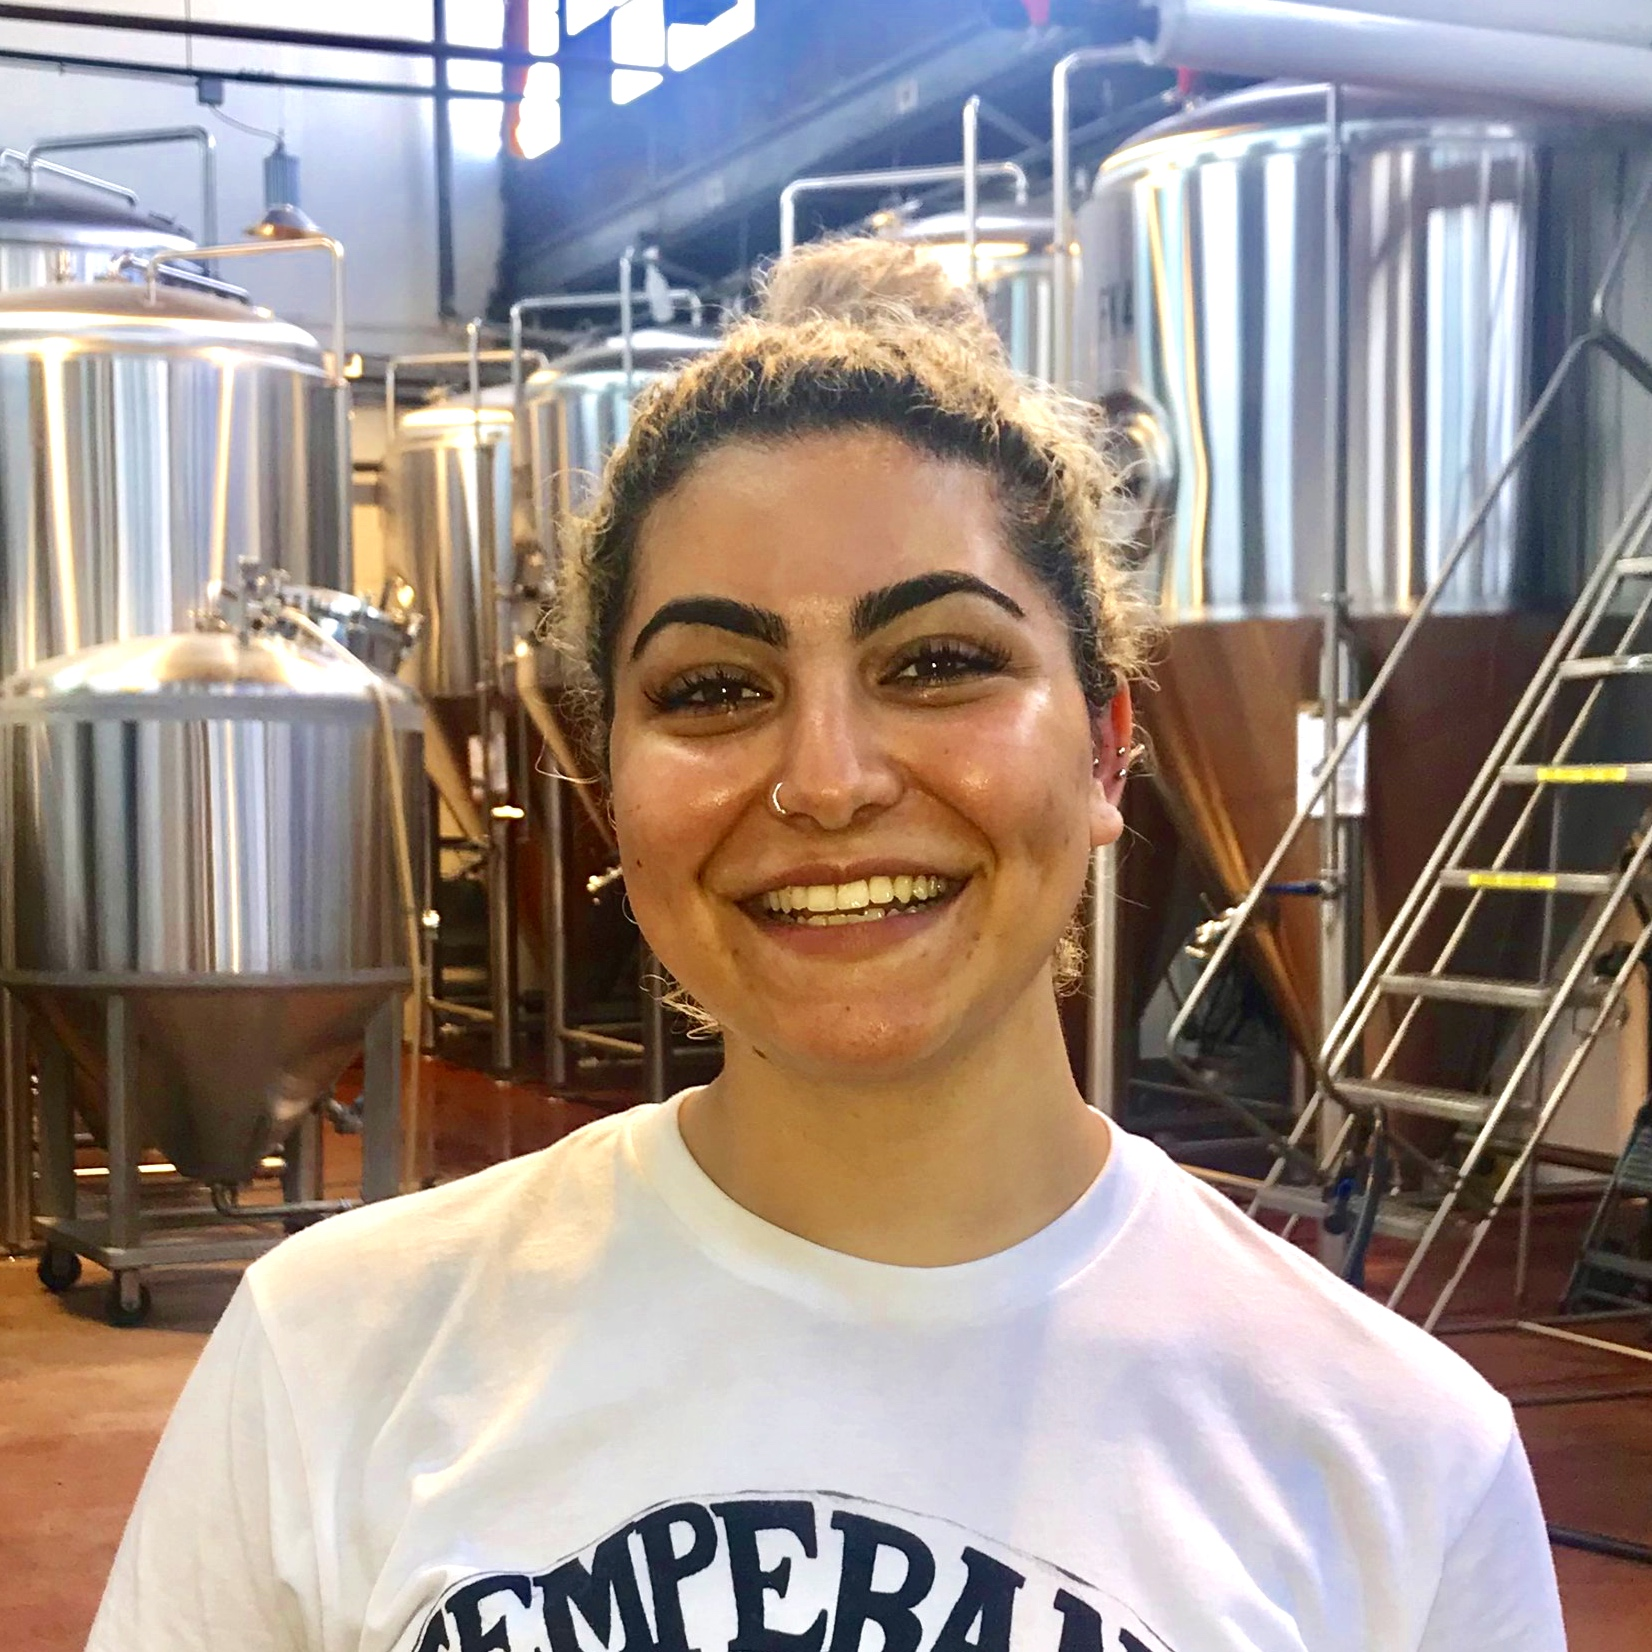 """Gacia, Tap Room/Brewery  In addition to her youthful enthusiasm and energy, Gacia brings her extensive knowledge of what the kids are saying these days. Older employees may feign indifference or mild amusement but are in fact happy to be able to seem """"current."""""""